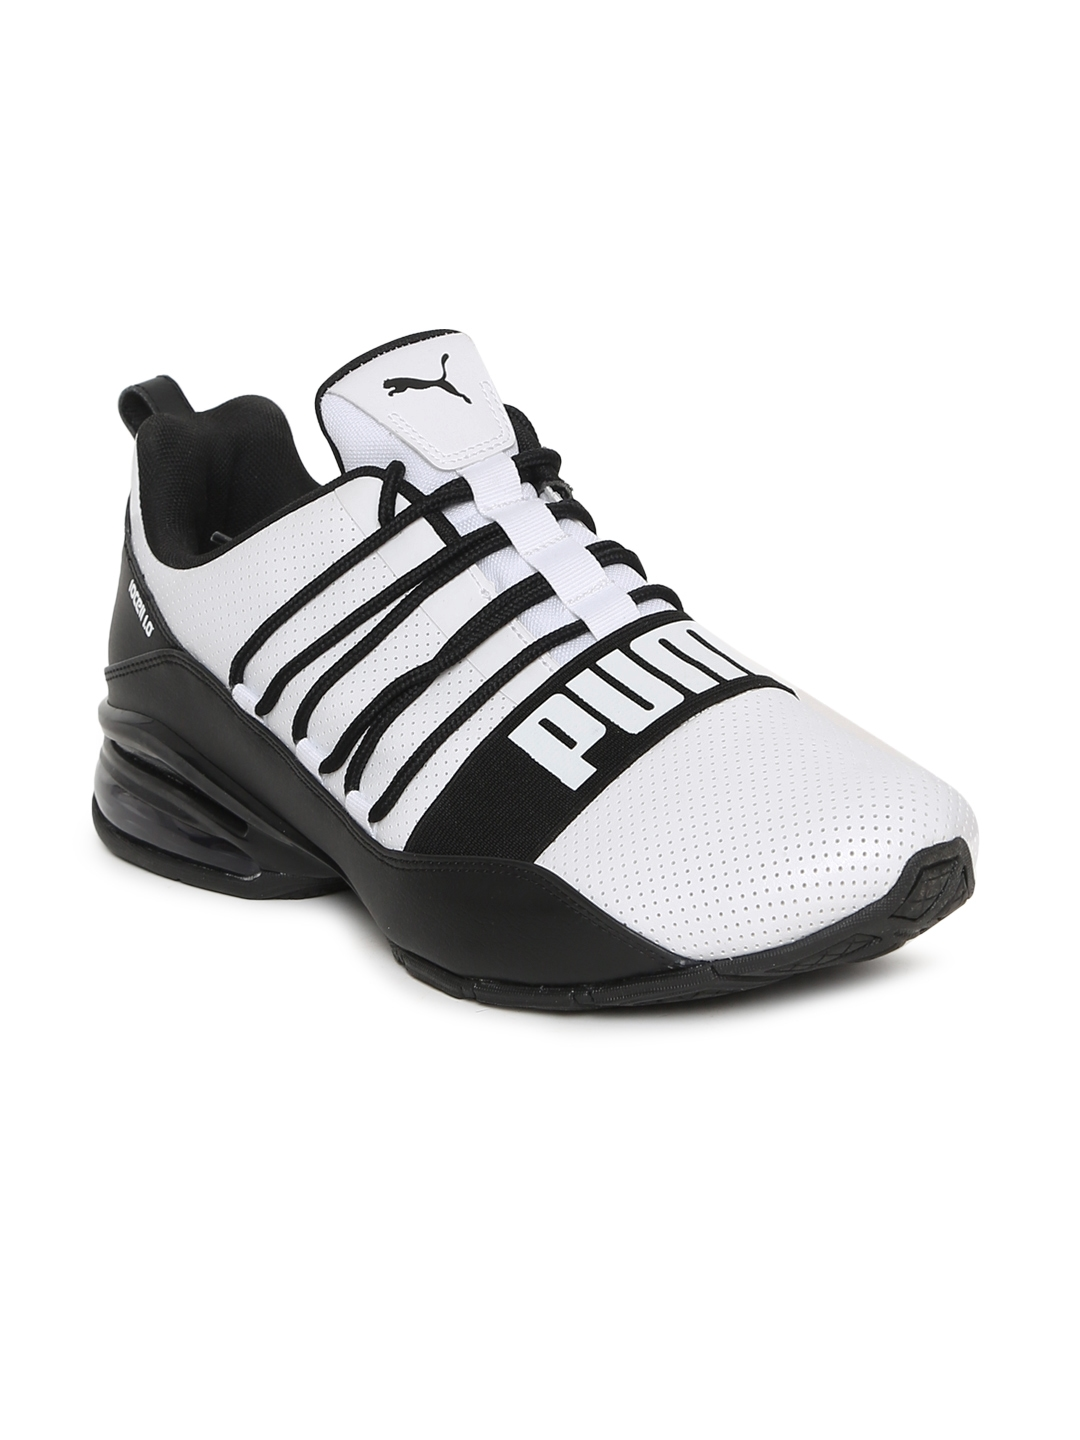 e2ea95992779d5 Buy Puma Men White   Black Cell Regulate SL Sports Running Shoes ...